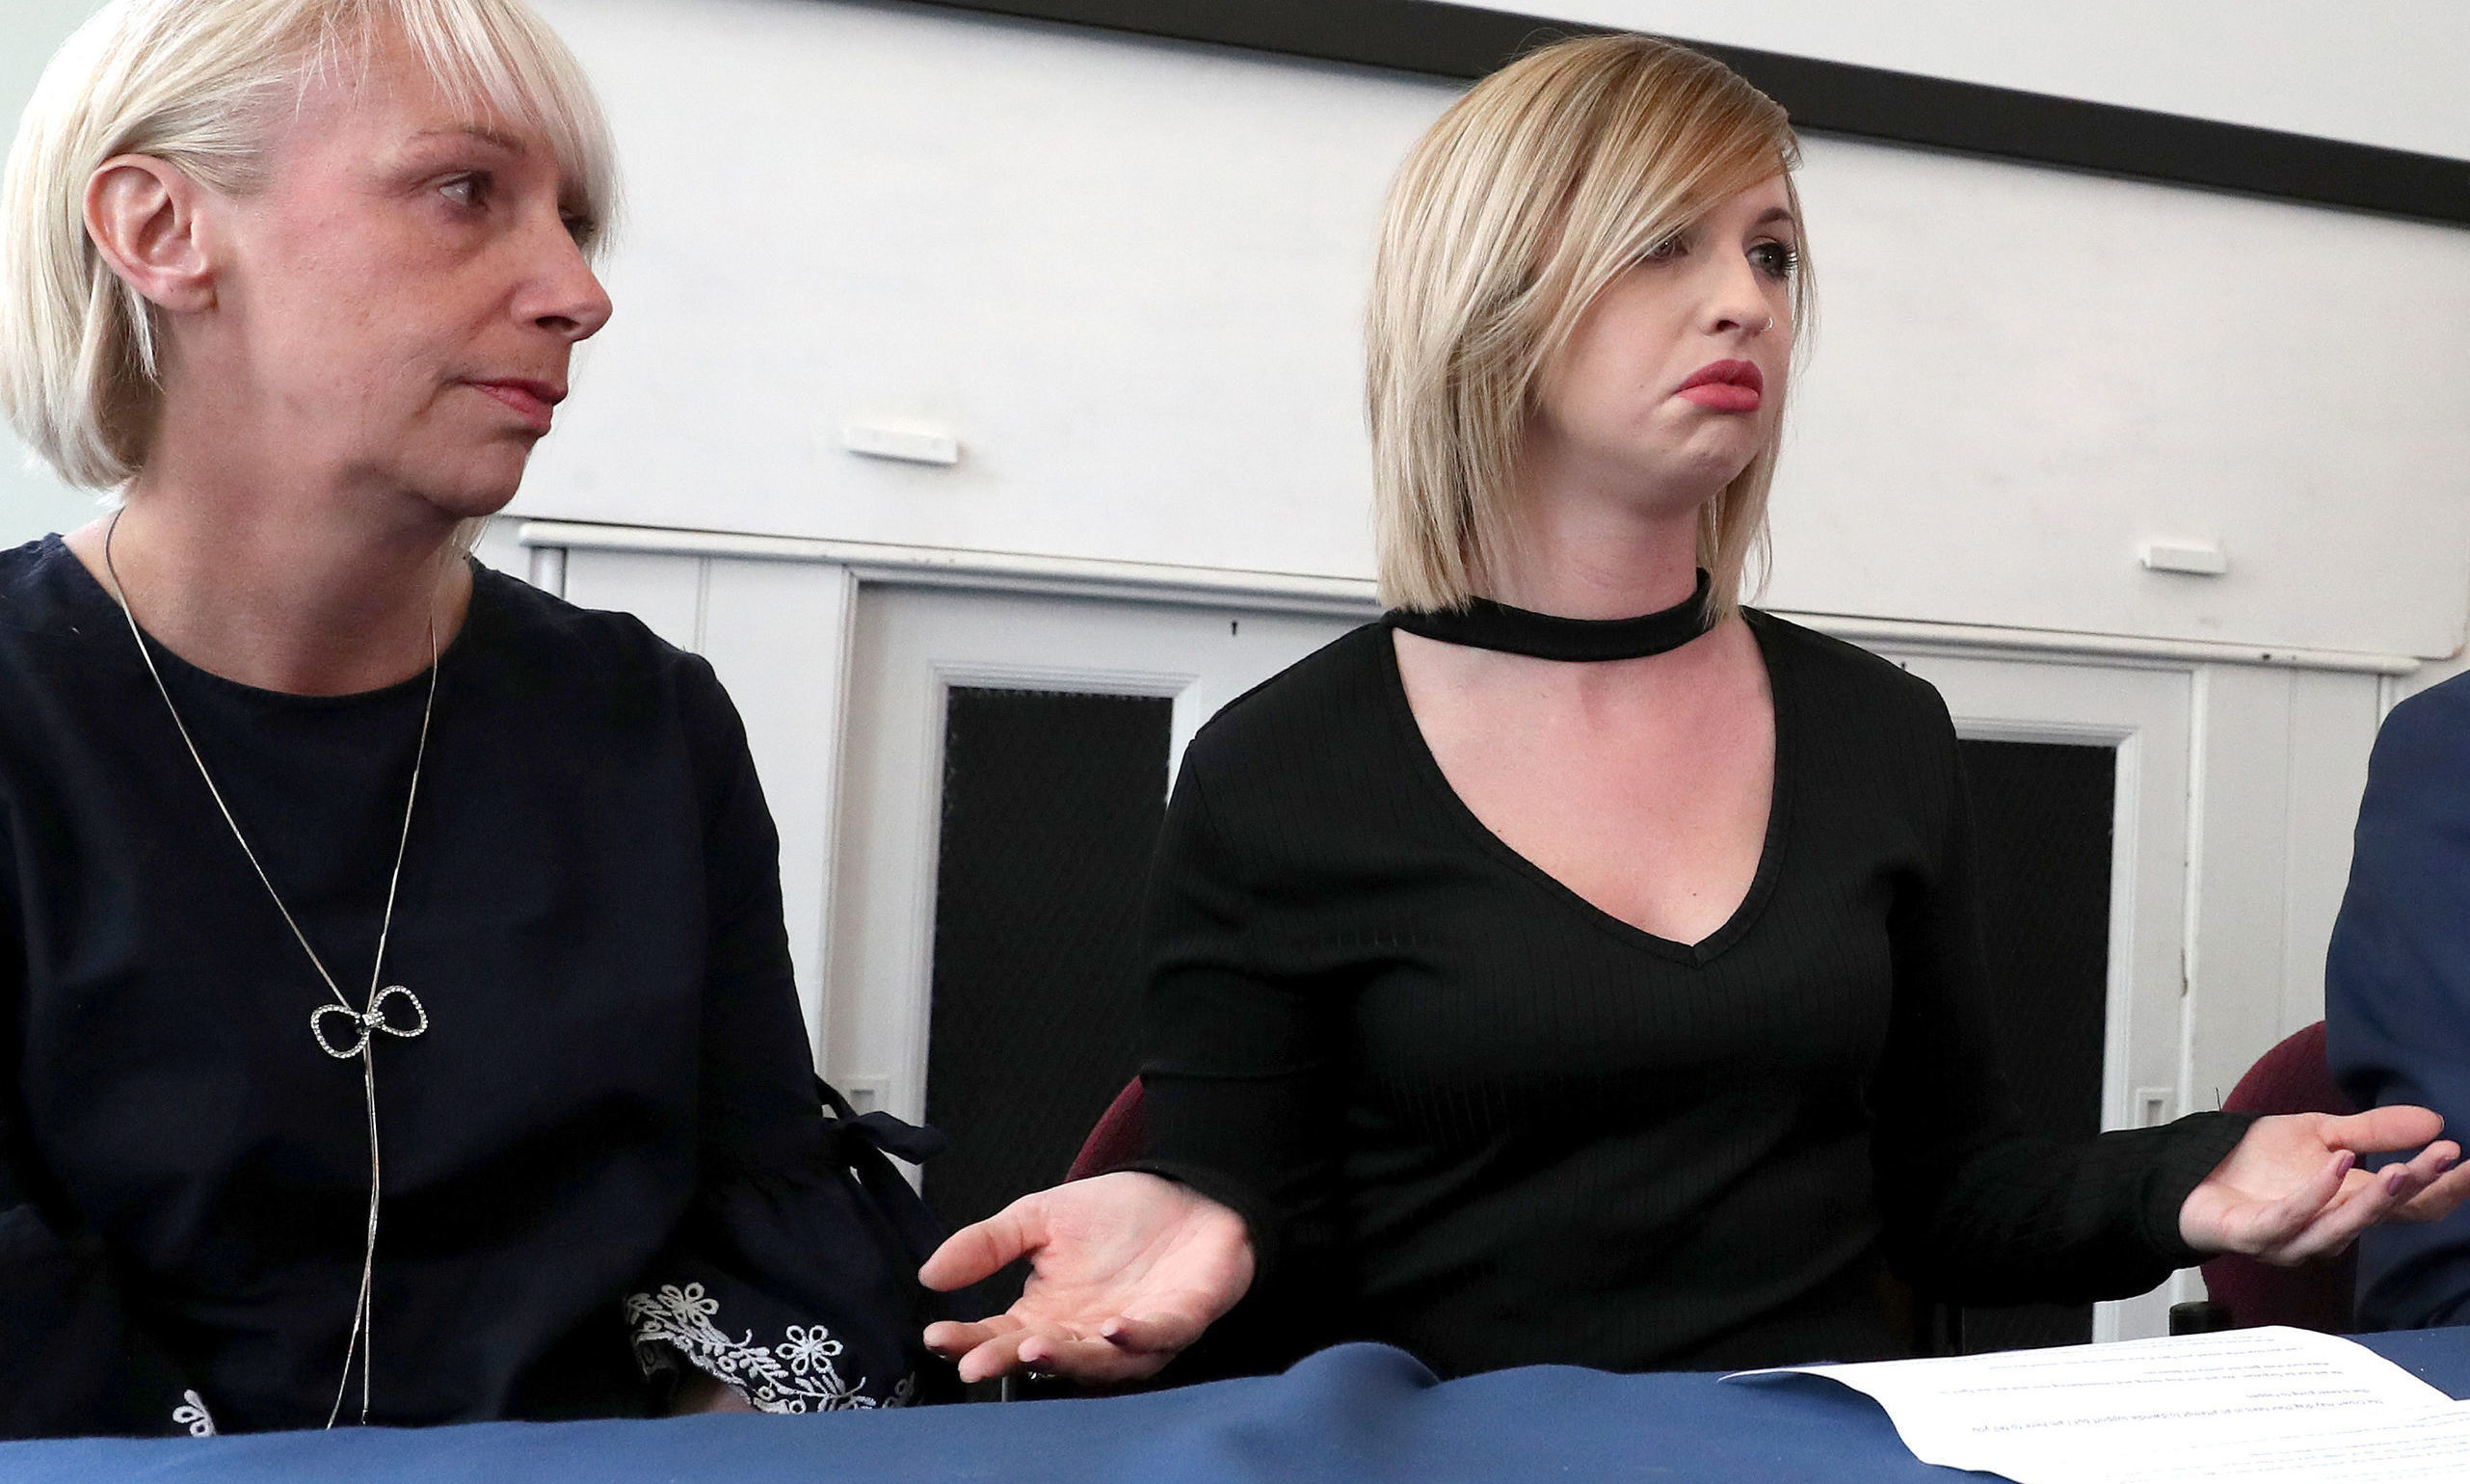 Sheku Bayoh's partner Collette Bell (right) gestures alongside her mother Lorraine during a press conference to outline their unprecedented civil action against Police Scotland.